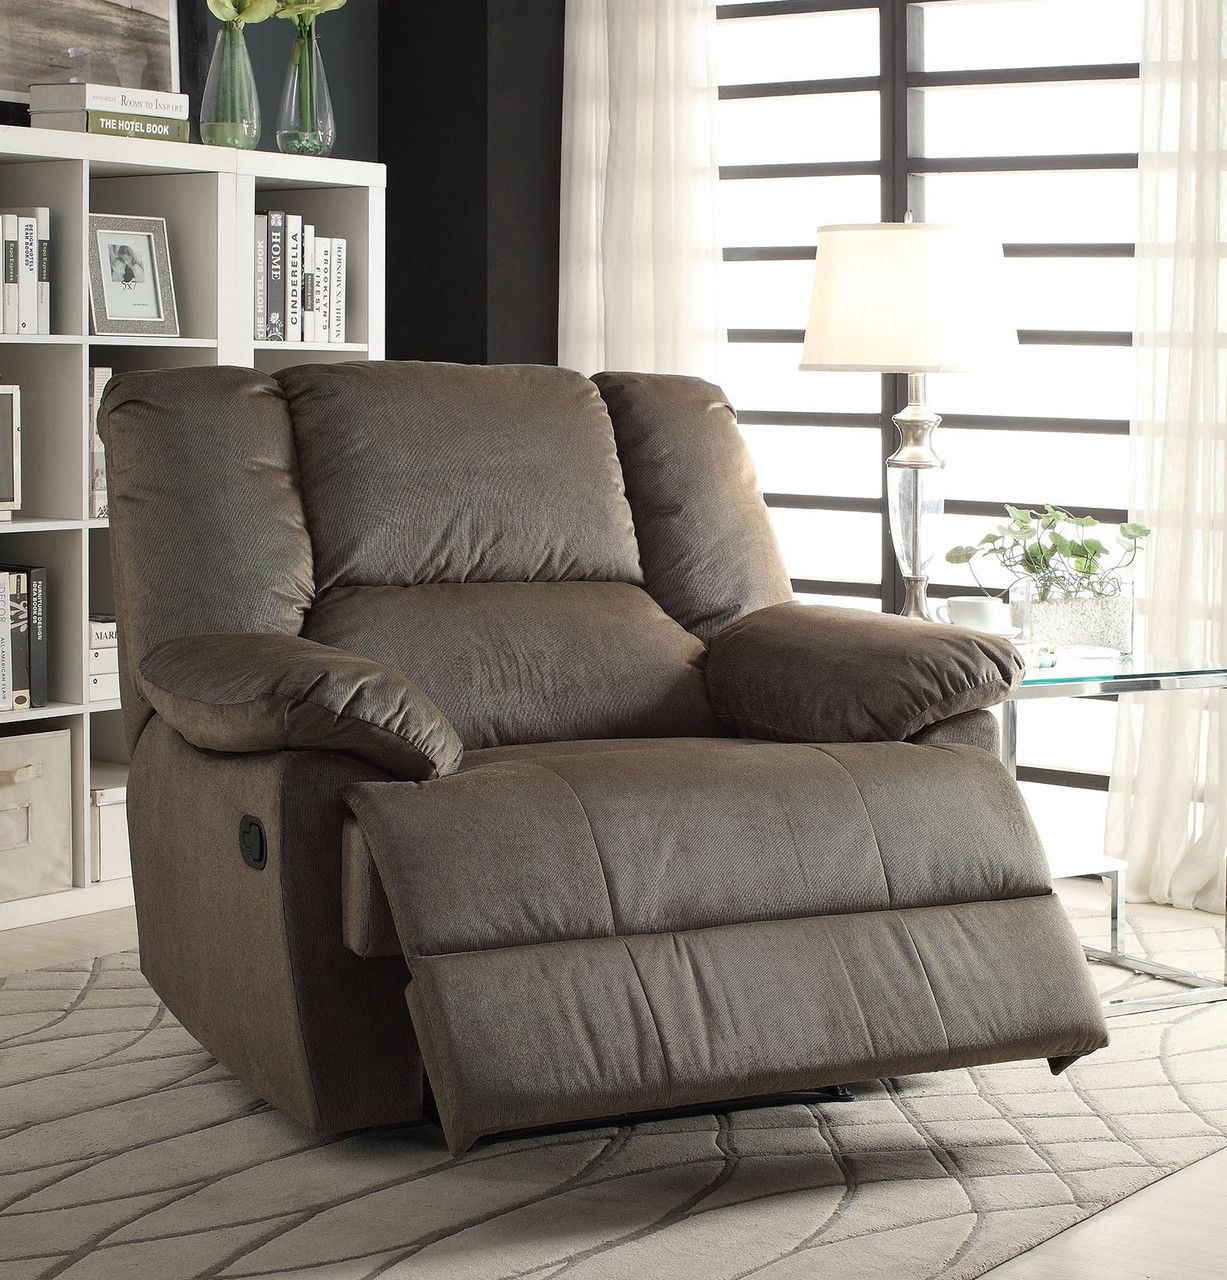 Oliver Sage Corduroy Glider Recliner Chair 59416  Recliner Gorgeous Living Room Recliners Decorating Inspiration